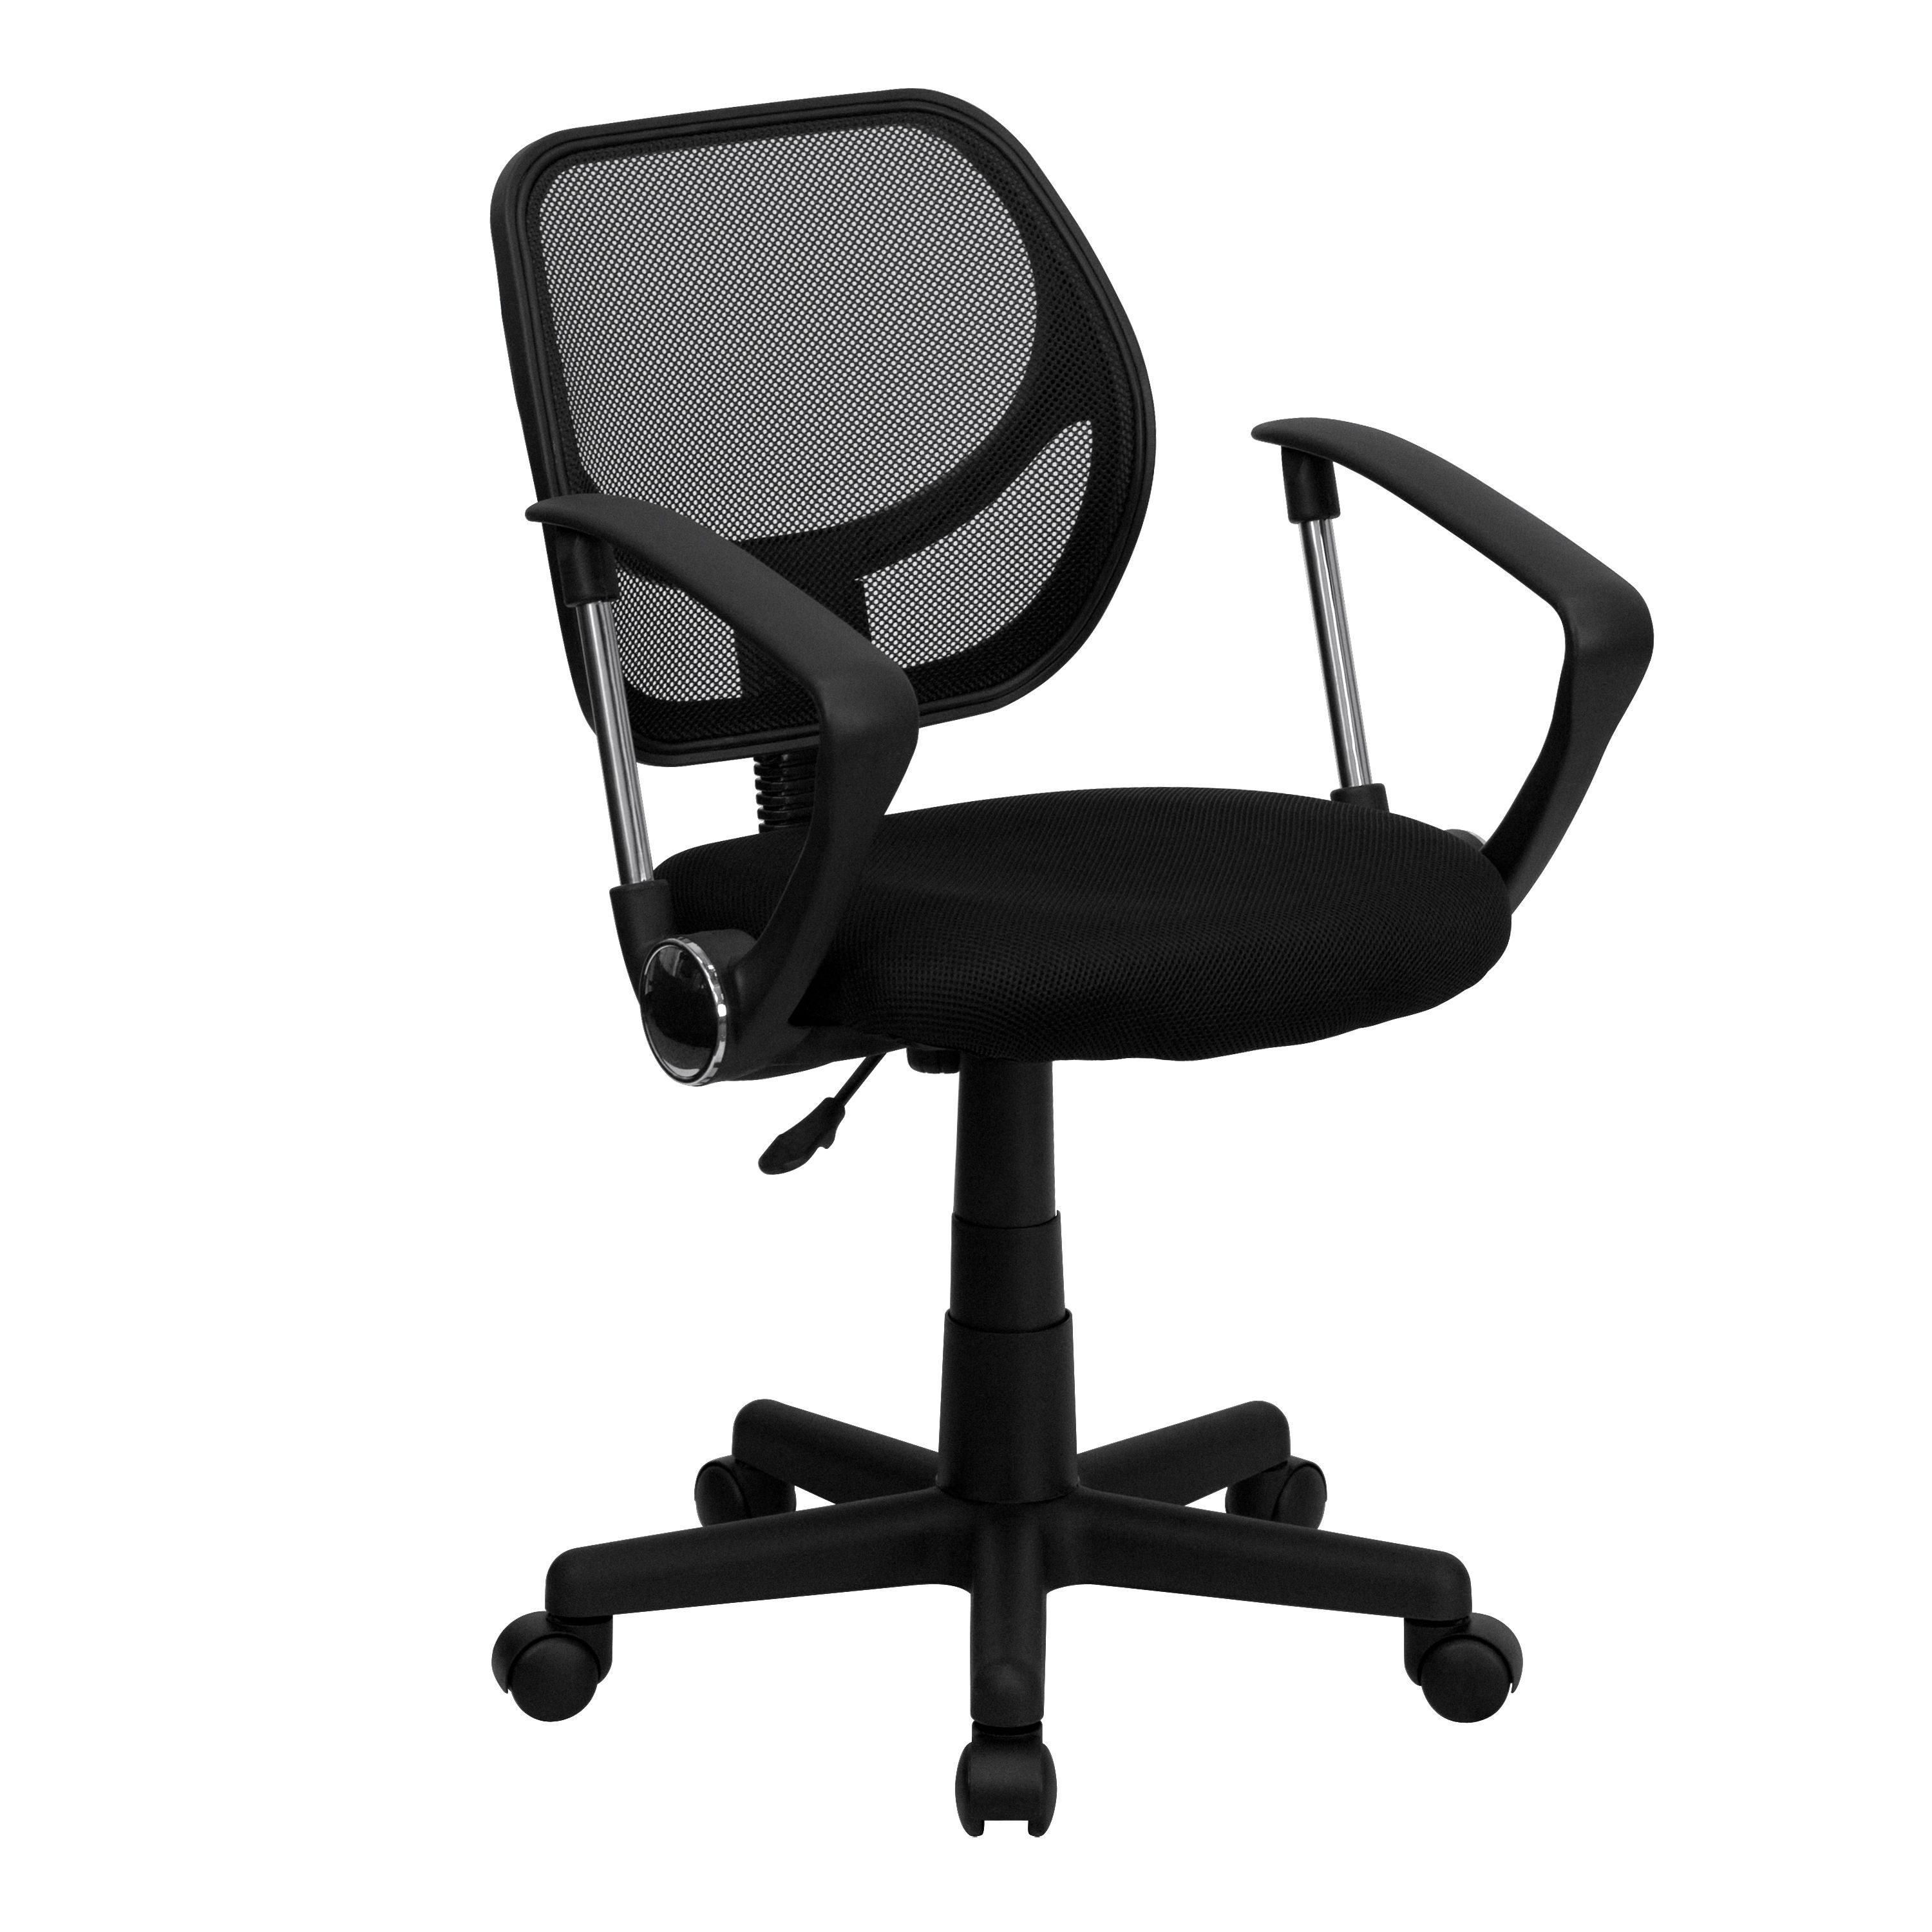 Black Mesh Computer Chair with Arms